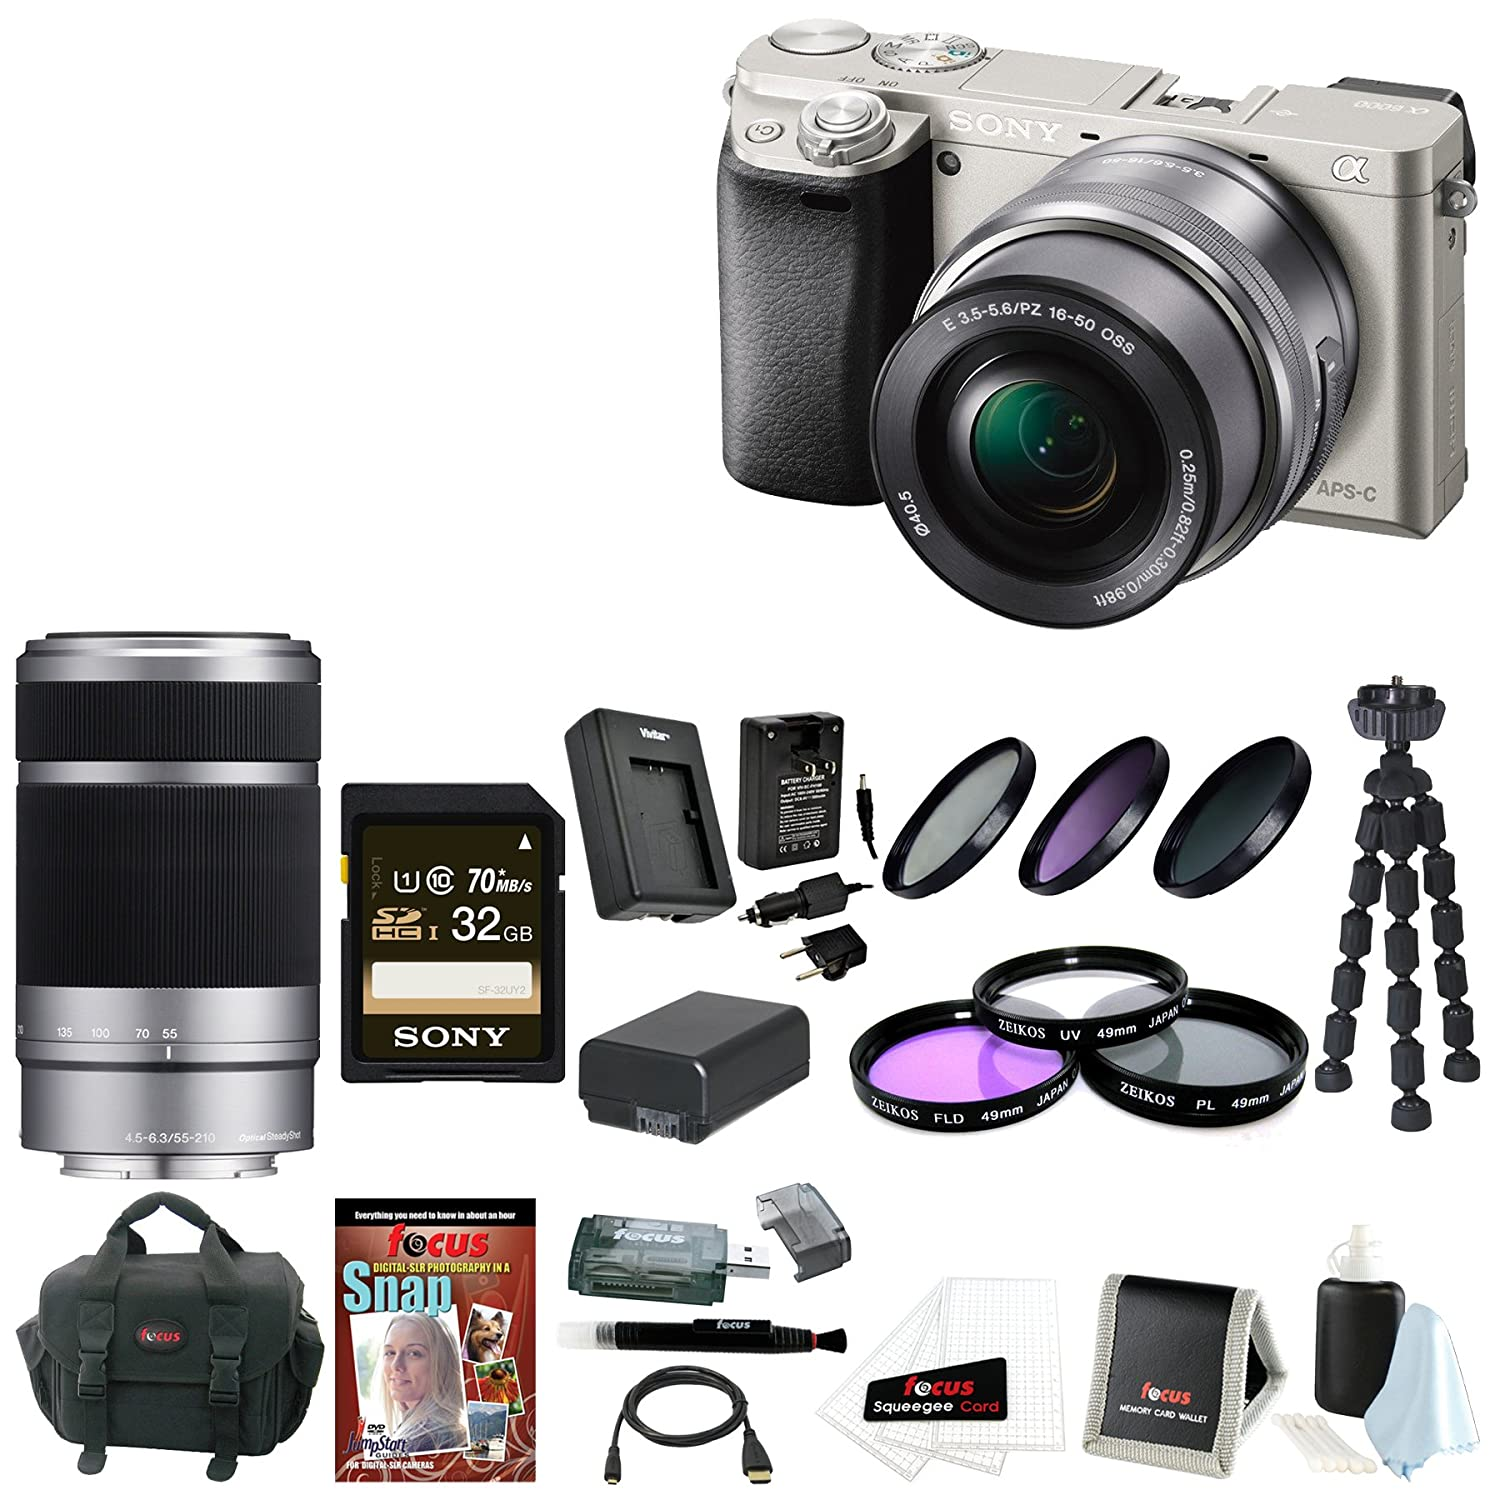 Sony Alpha a6000 ILCE6000LS ILCE6000L/S 24.3 MP Interchangeable Lens Camera with 16-50mm Power Zoom Lens (Silver) with Sony 55-210mm f/4.5-6.3 Telephoto Lens  ..